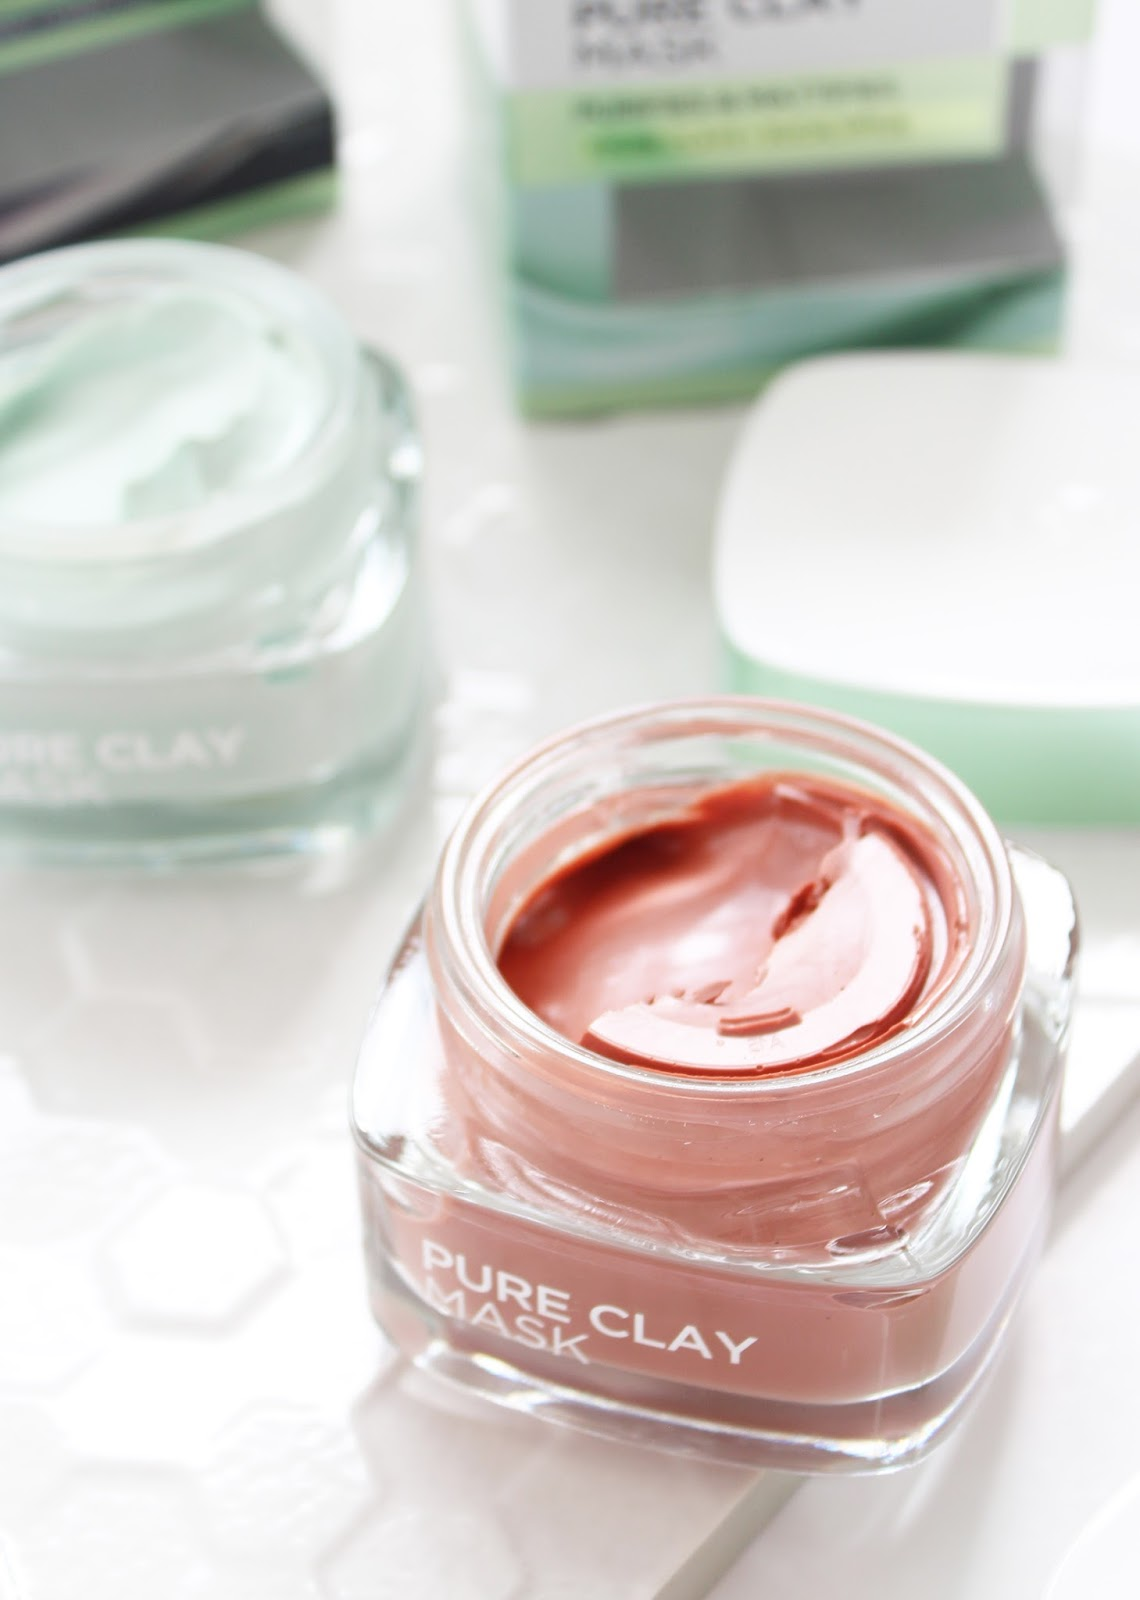 L'OREAL PARIS | Pure Clay Masks - Review - CassandraMyee